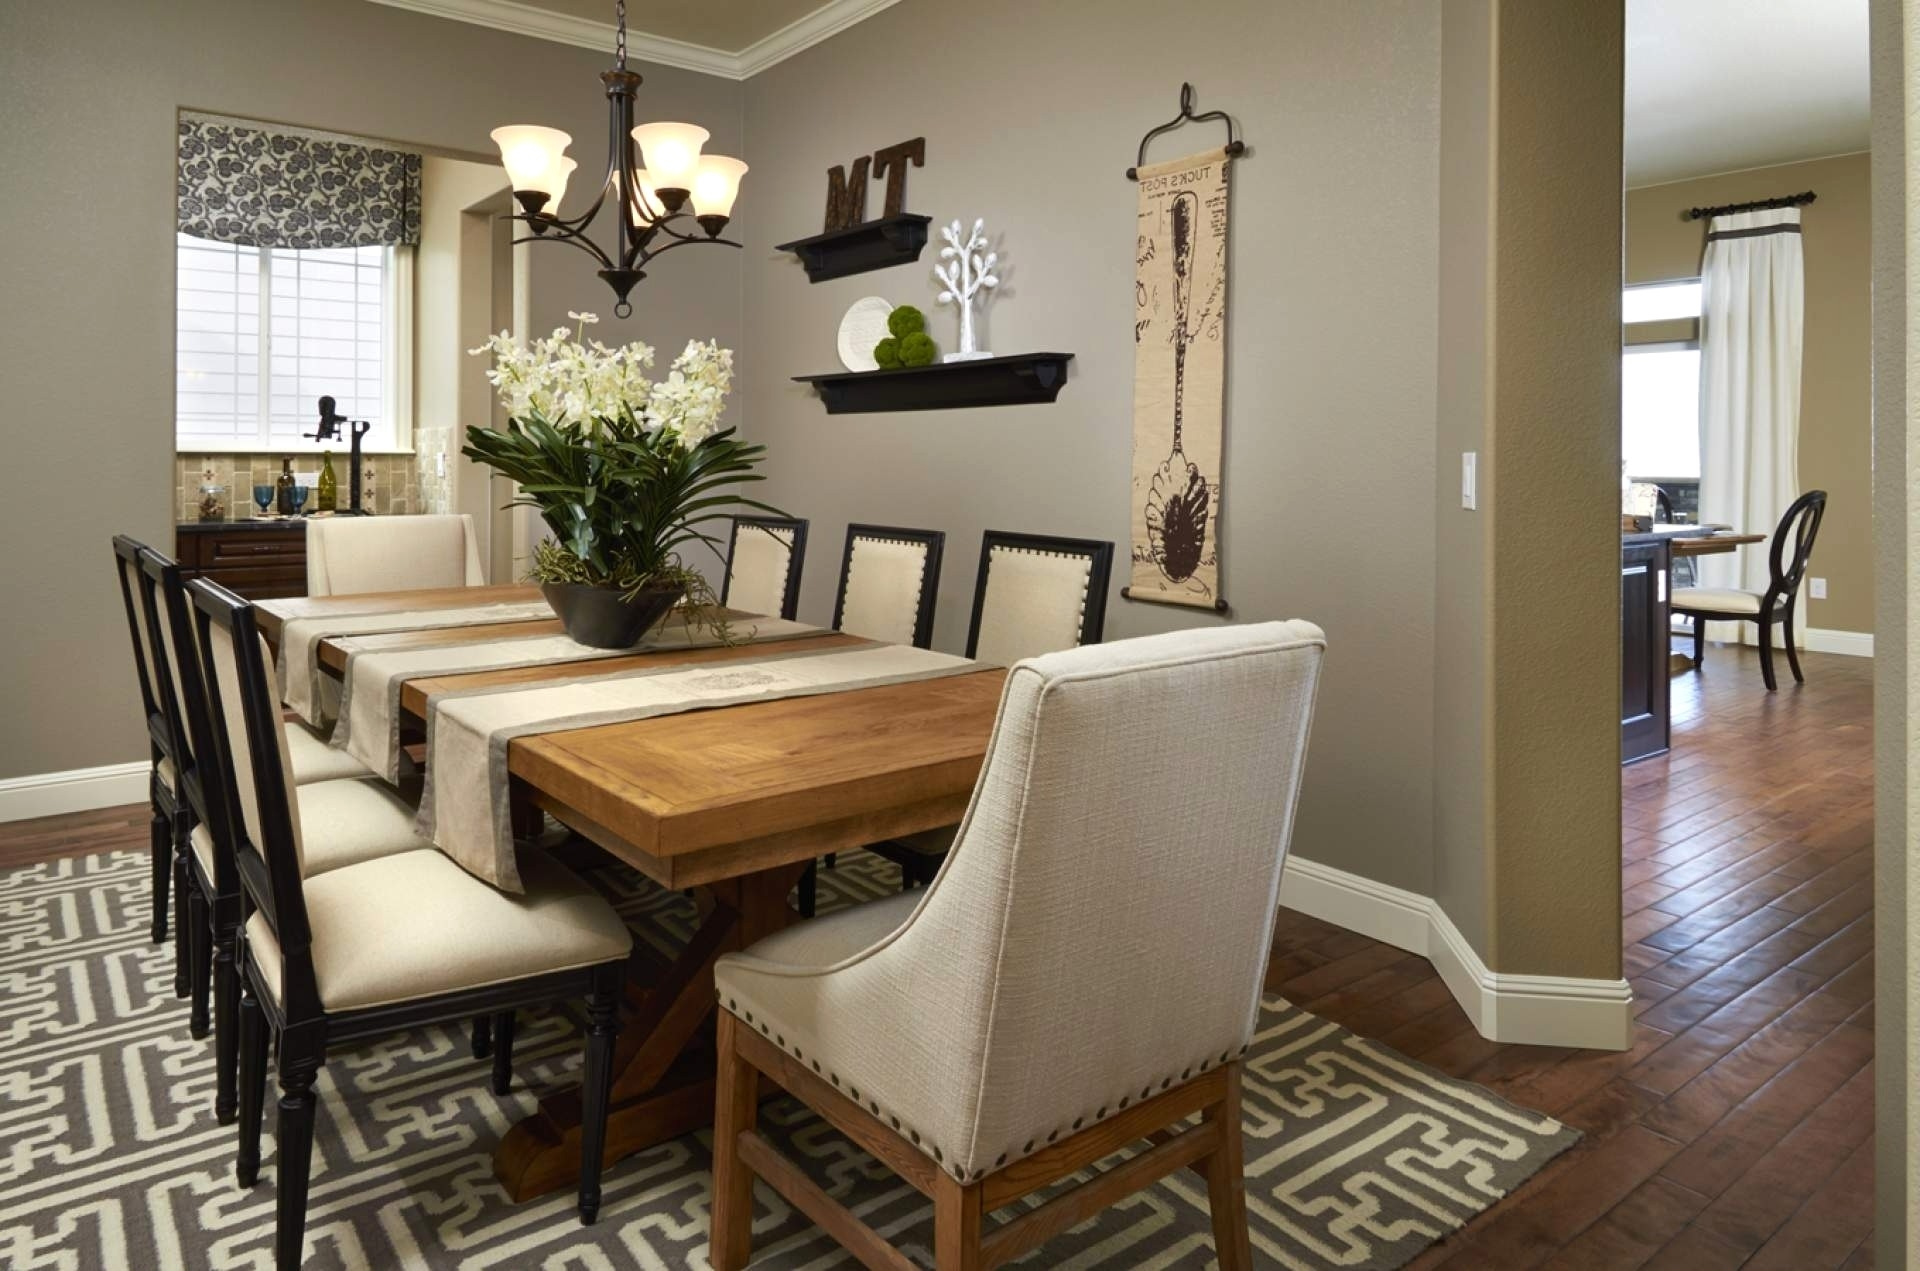 Wall Art Dining Room Wonderful With Images Of Photography New At Regarding Dining Room Wall Art (View 12 of 20)